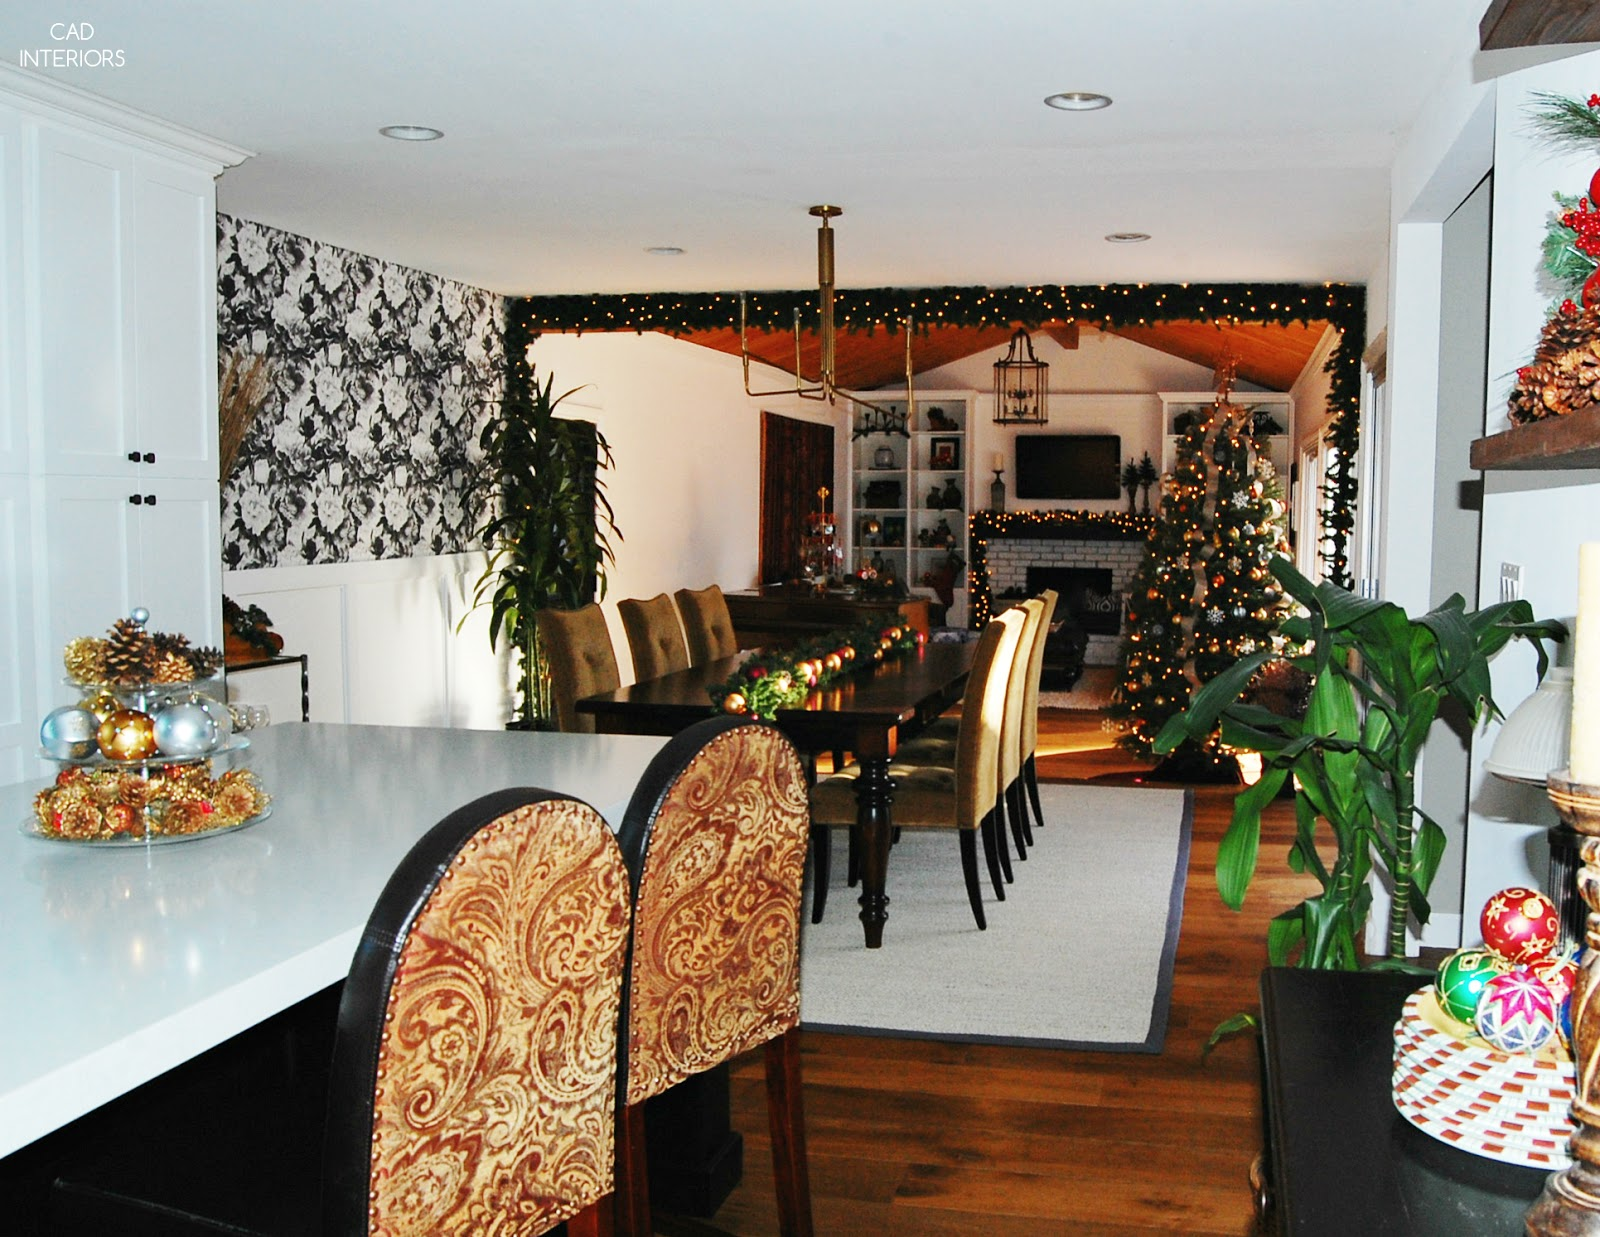 eclectic transitional traditional modern Christmas decorations home decor interior design